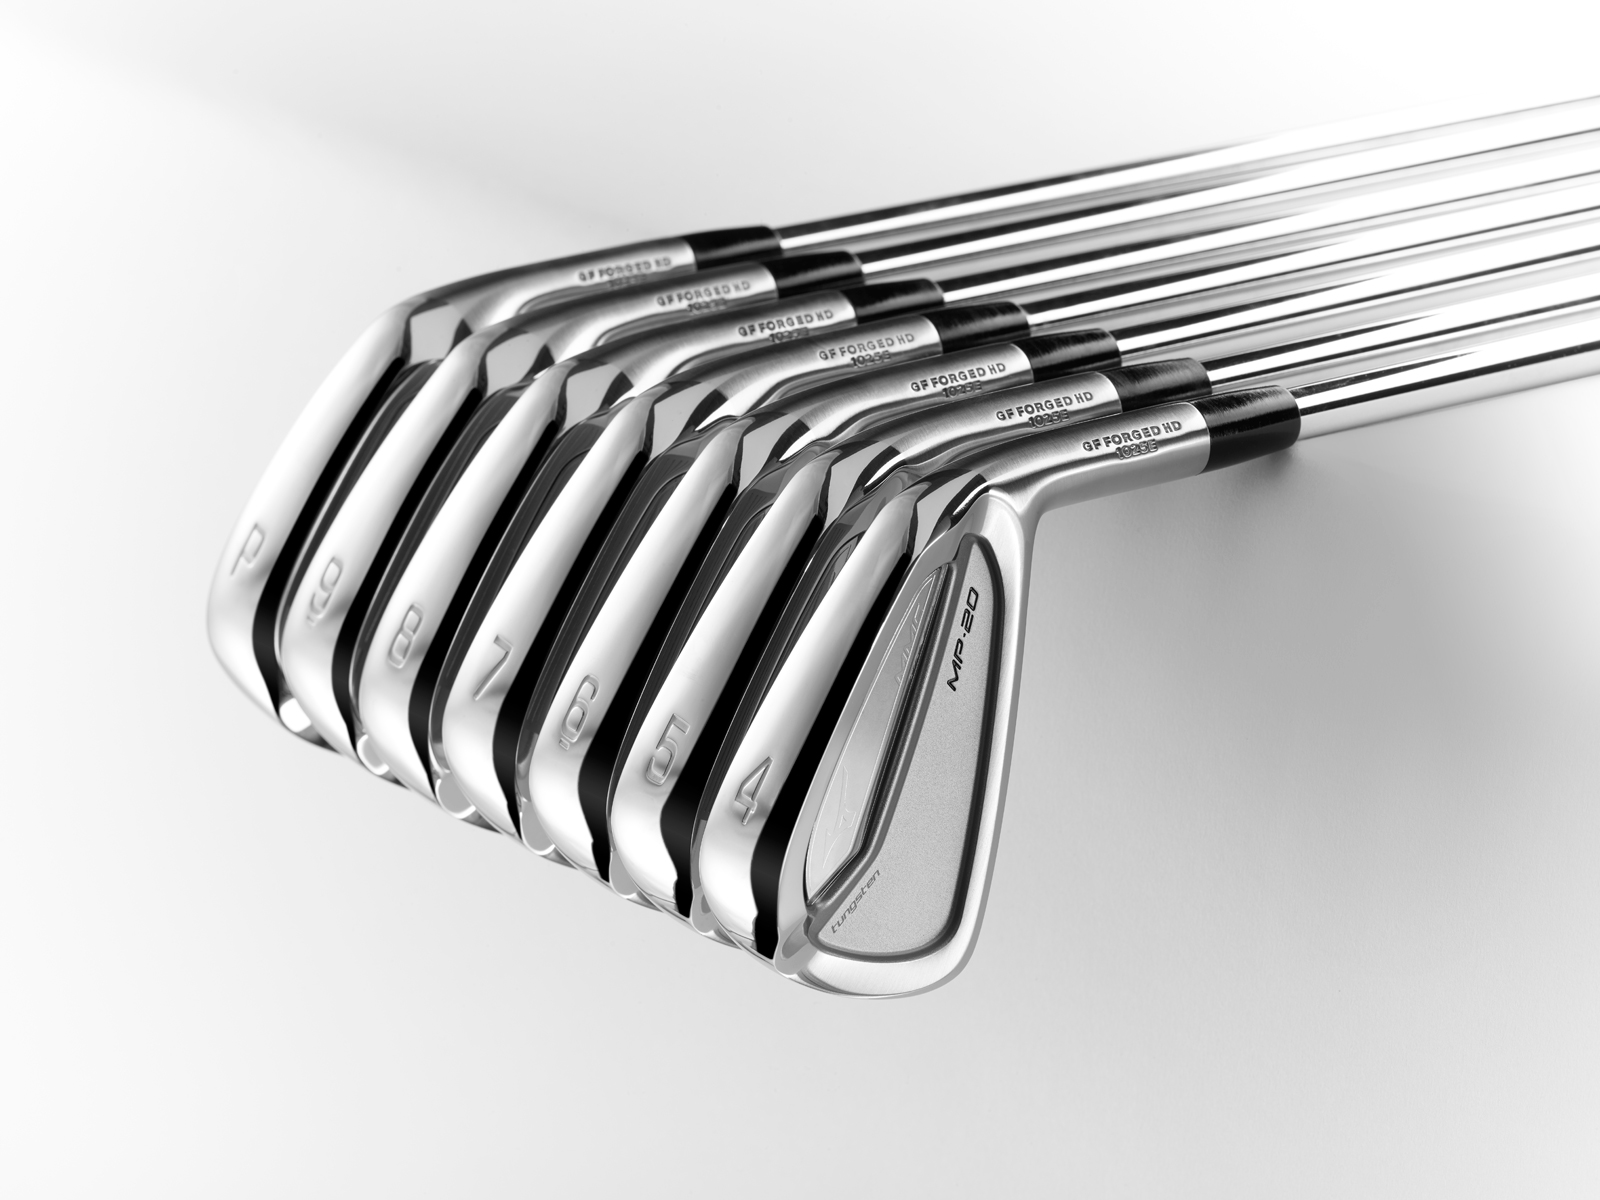 Mizuno MP-20 MMC Golf Irons